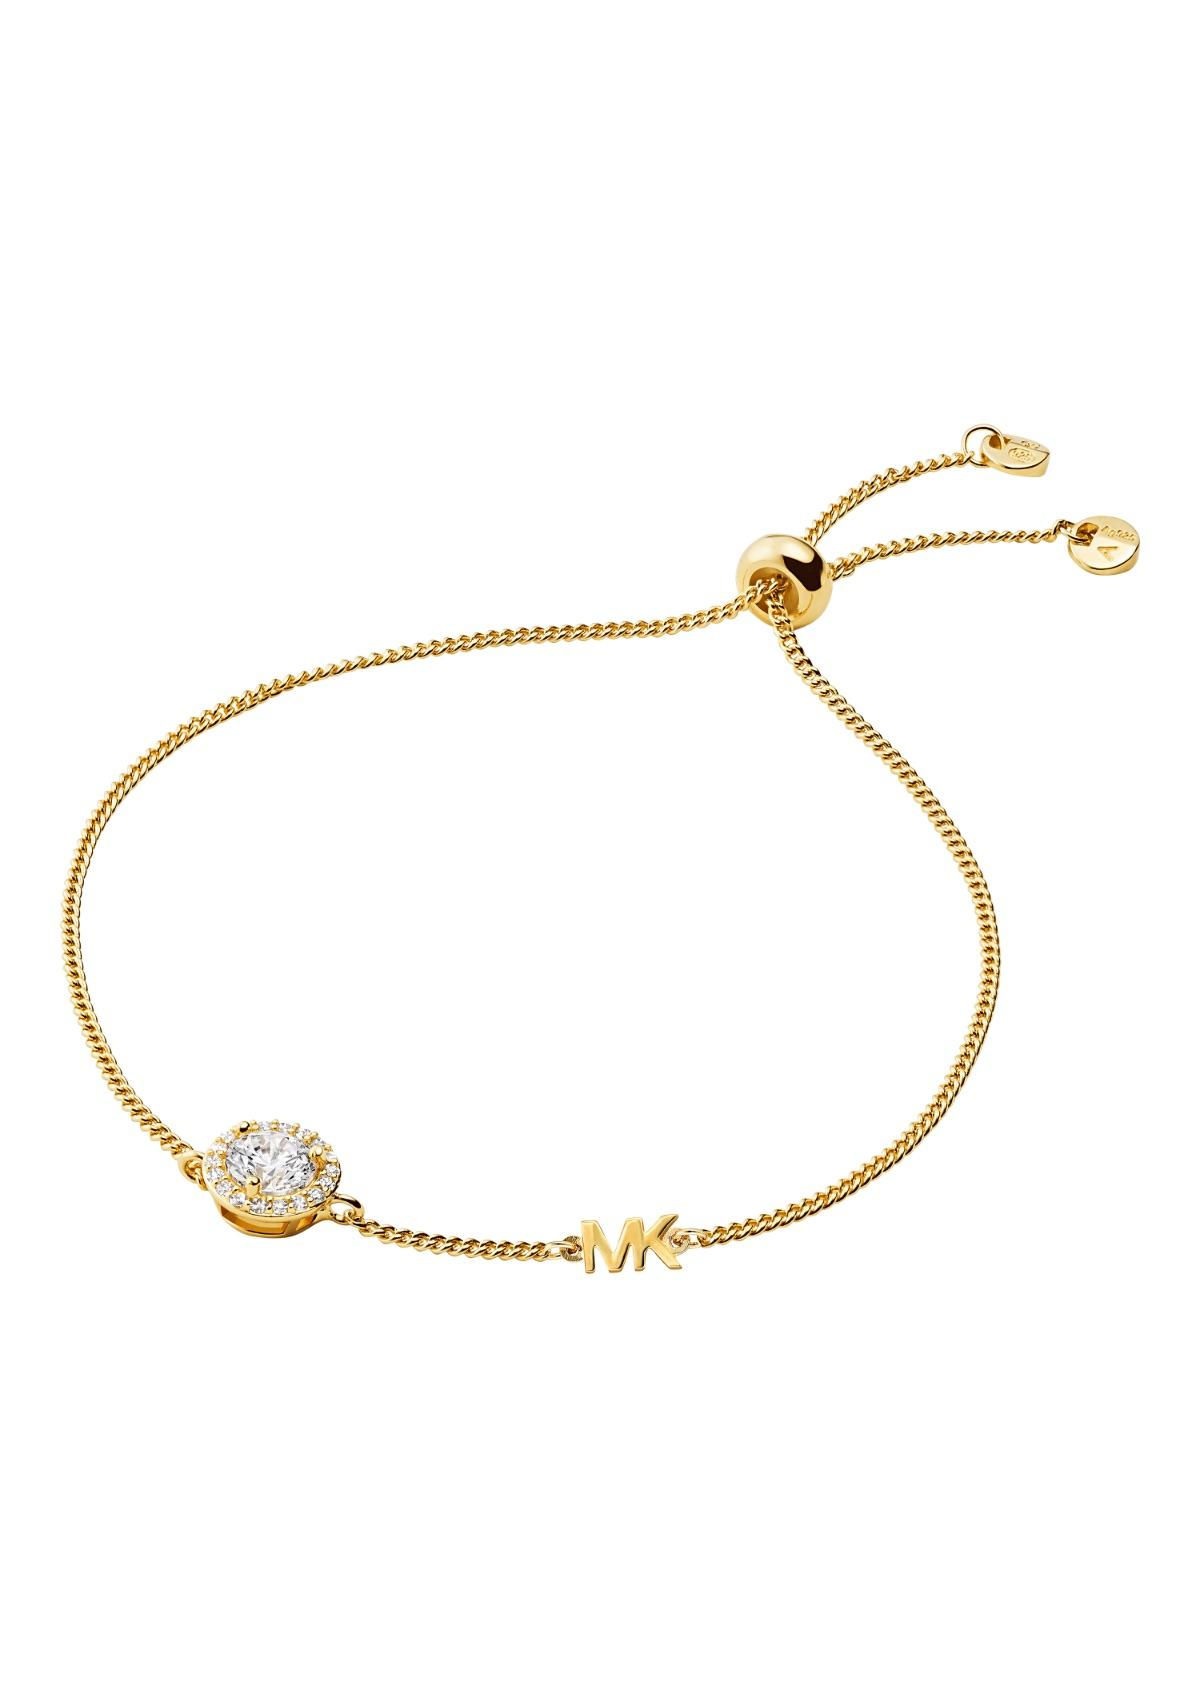 Gold diamond bracelet on White background